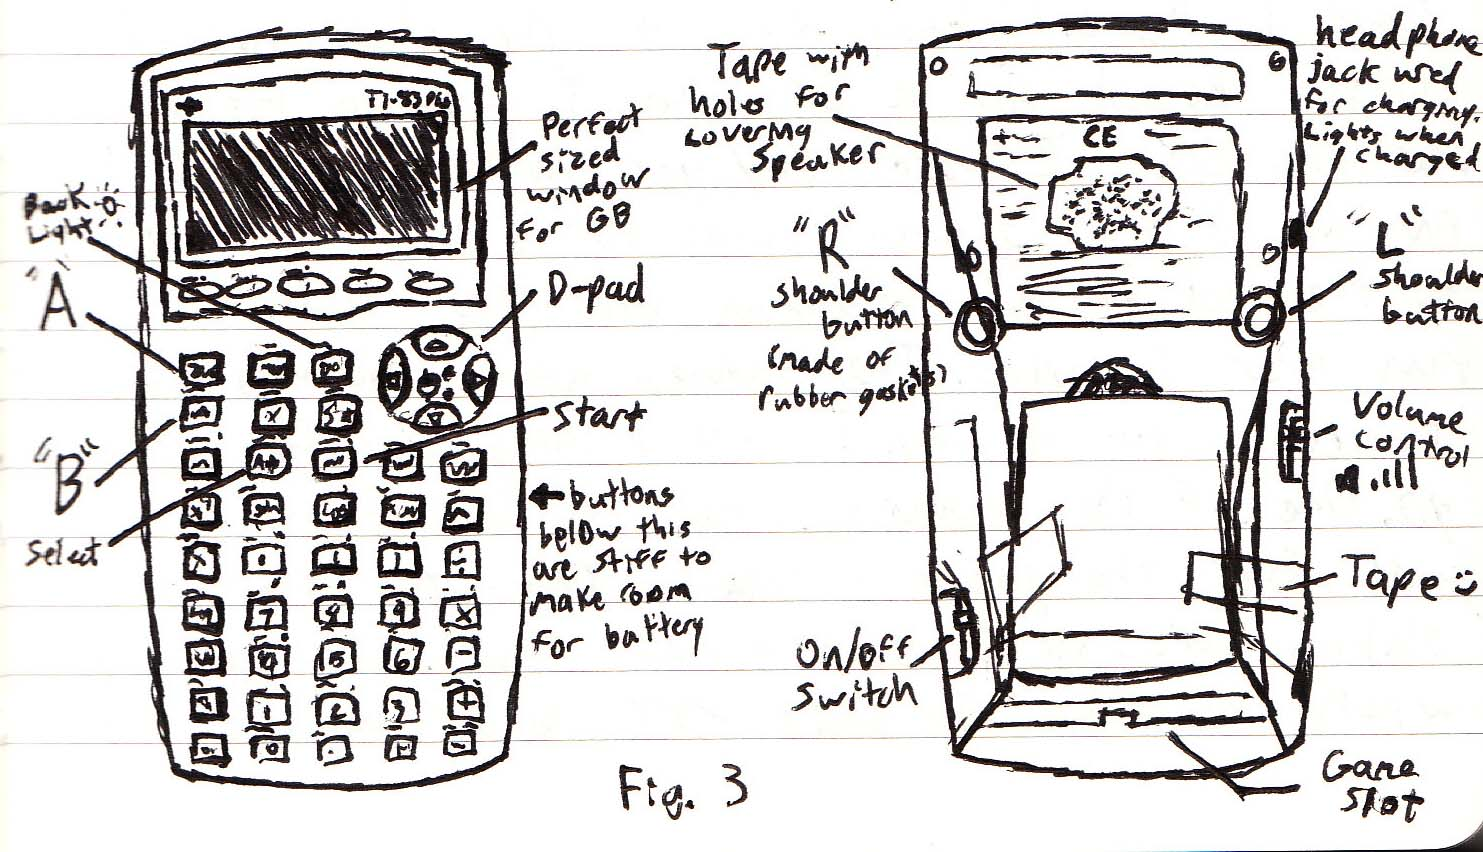 Diagram of a calculator diy enthusiasts wiring diagrams phi is for flux an introduction of sorts and a gameboy calculator rh cjblocker blogspot com class diagram of a calculator diagram of how a calculator works ccuart Images